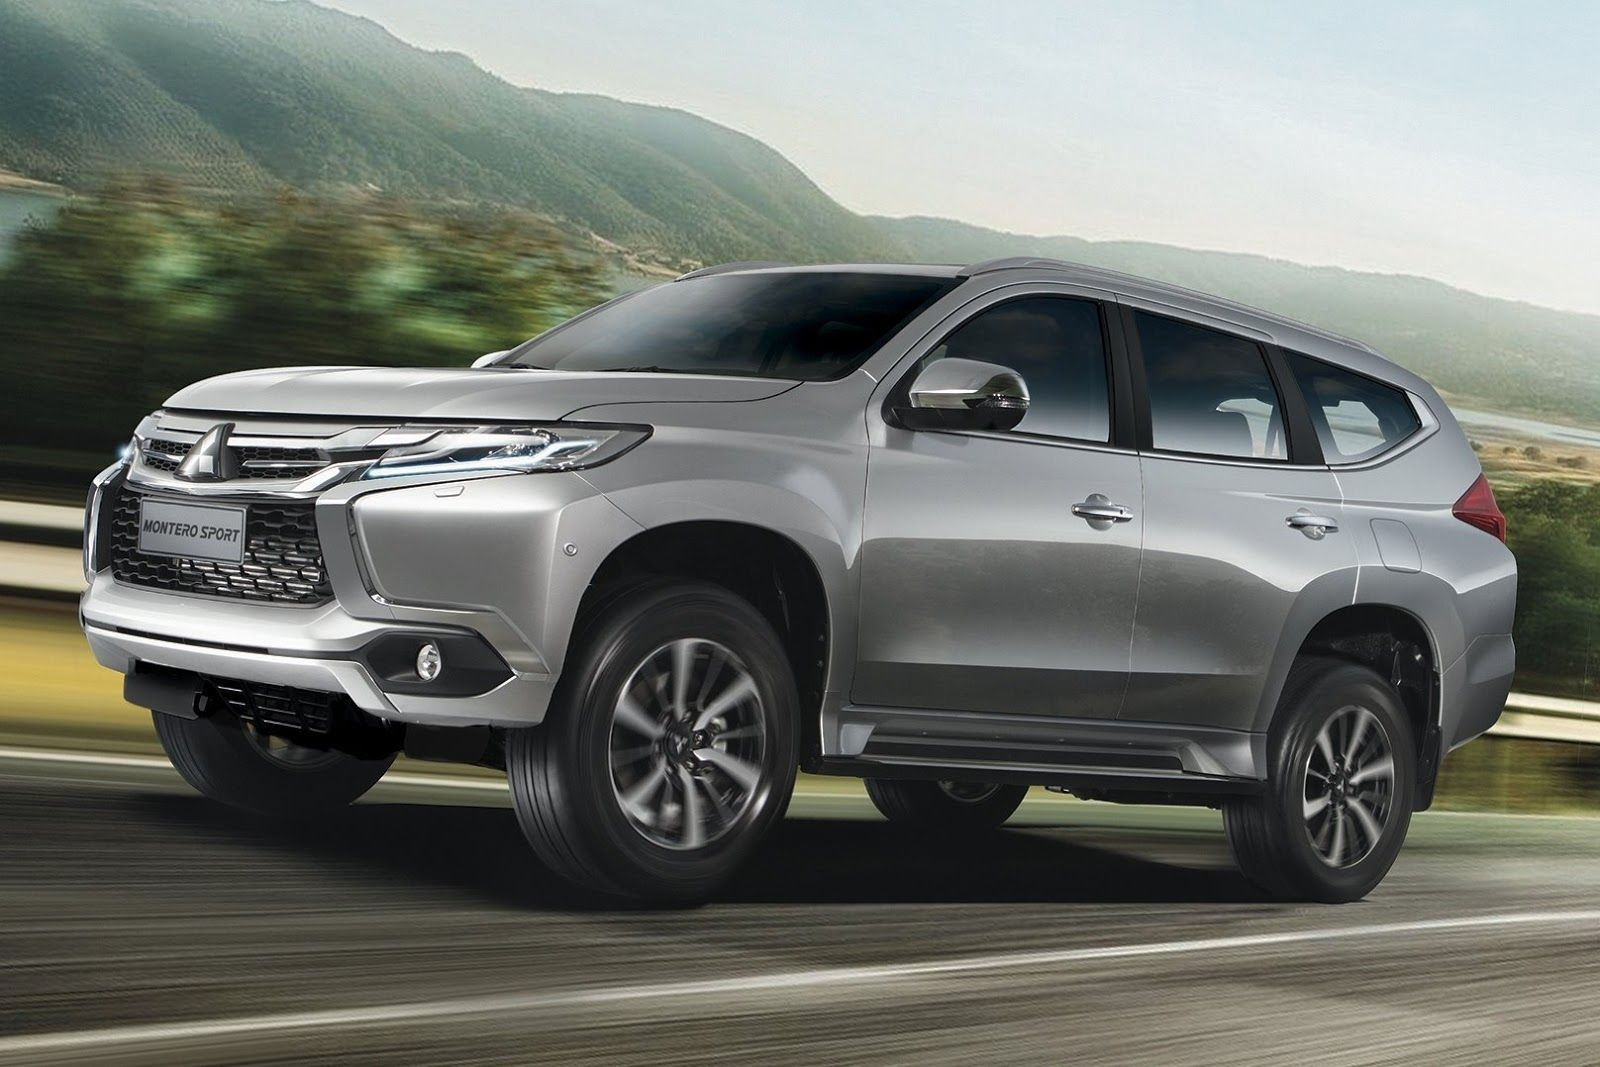 69 Best 2020 Mitsubishi Montero Sport Philippines Images